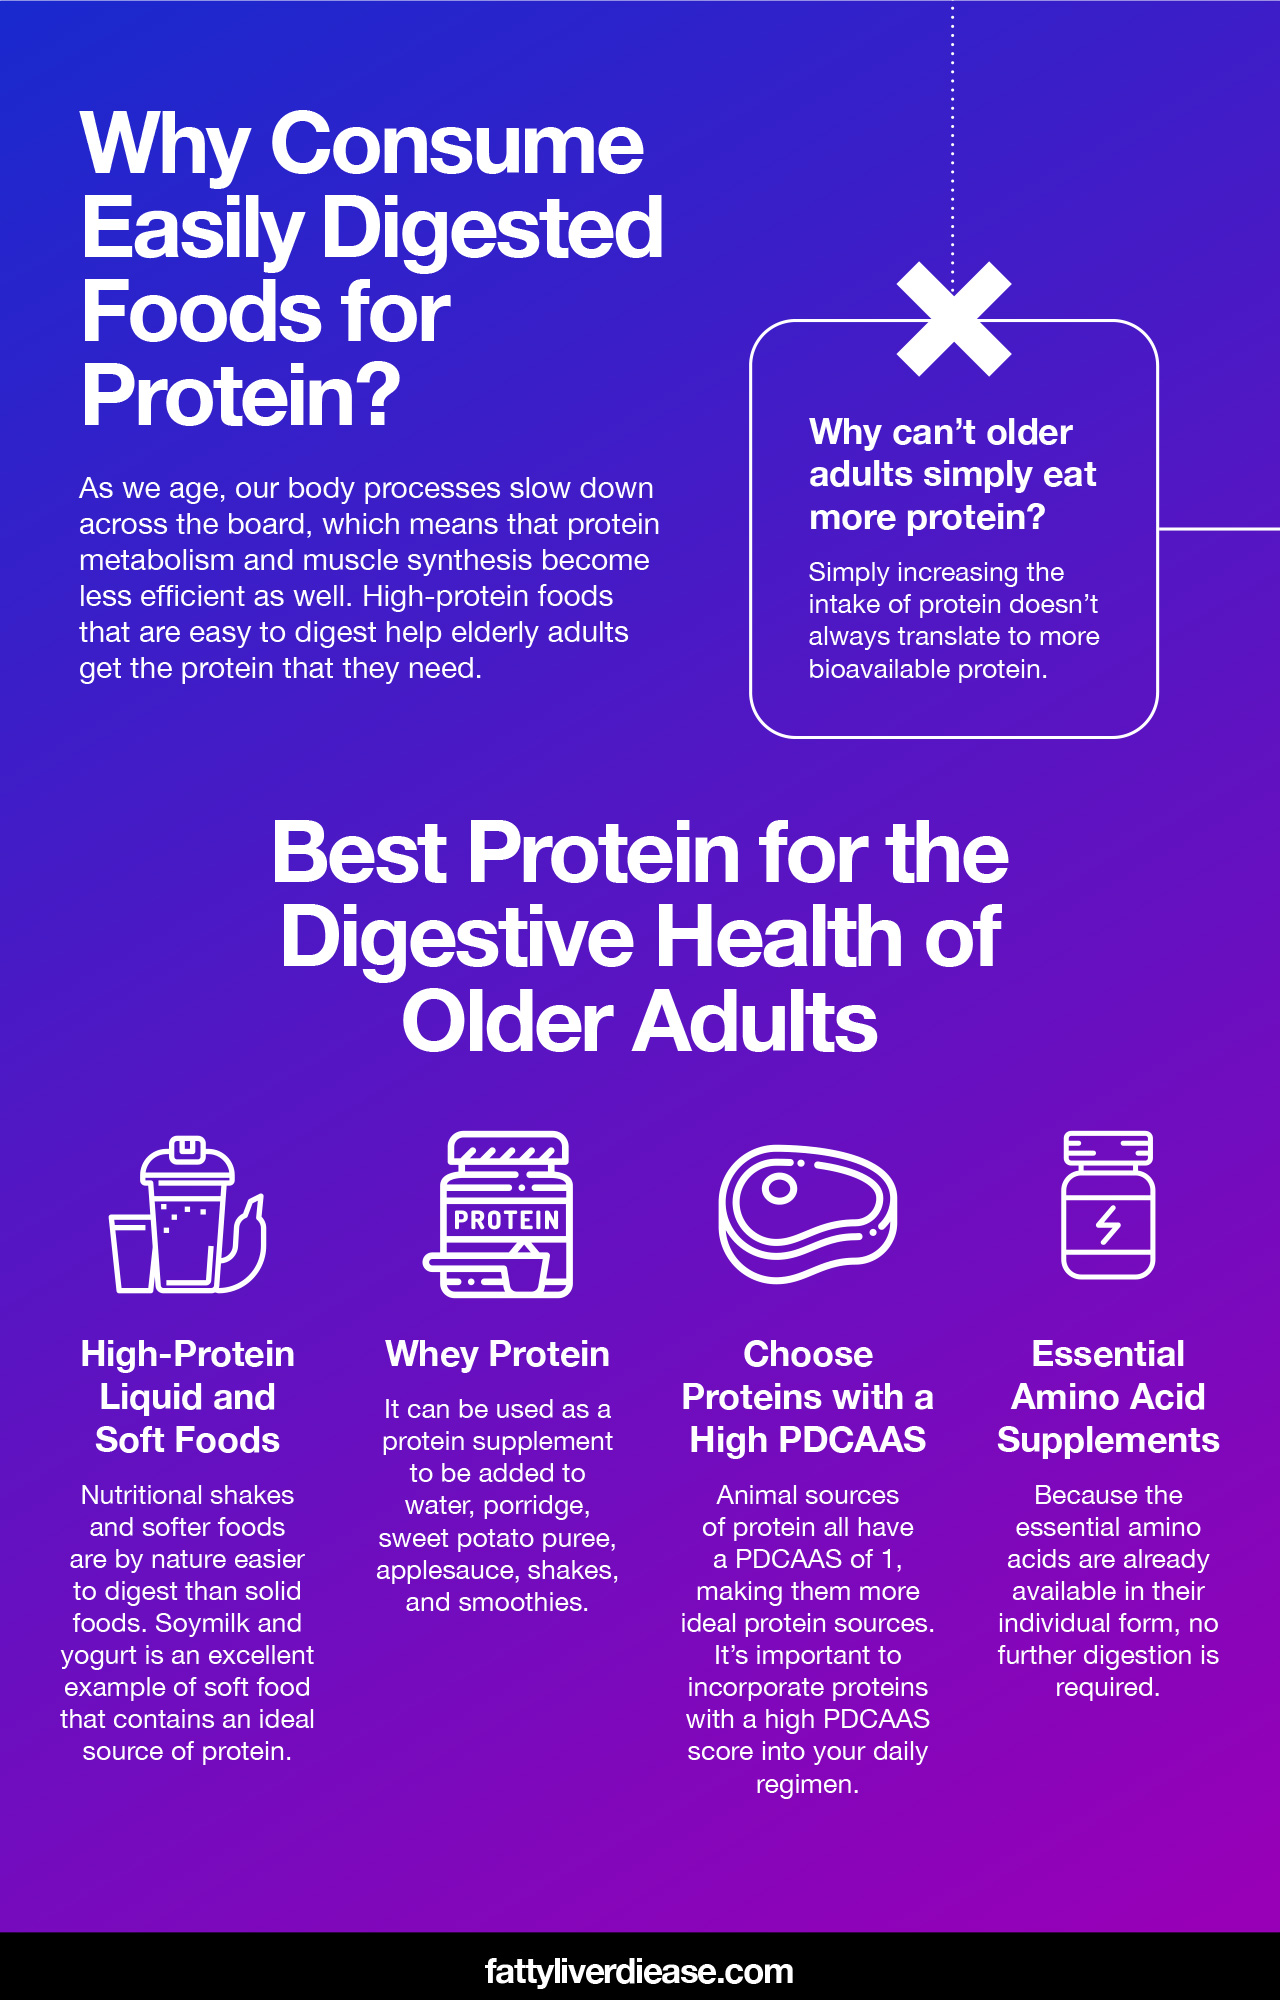 Why Consume Easily Digested Foods for Protein?